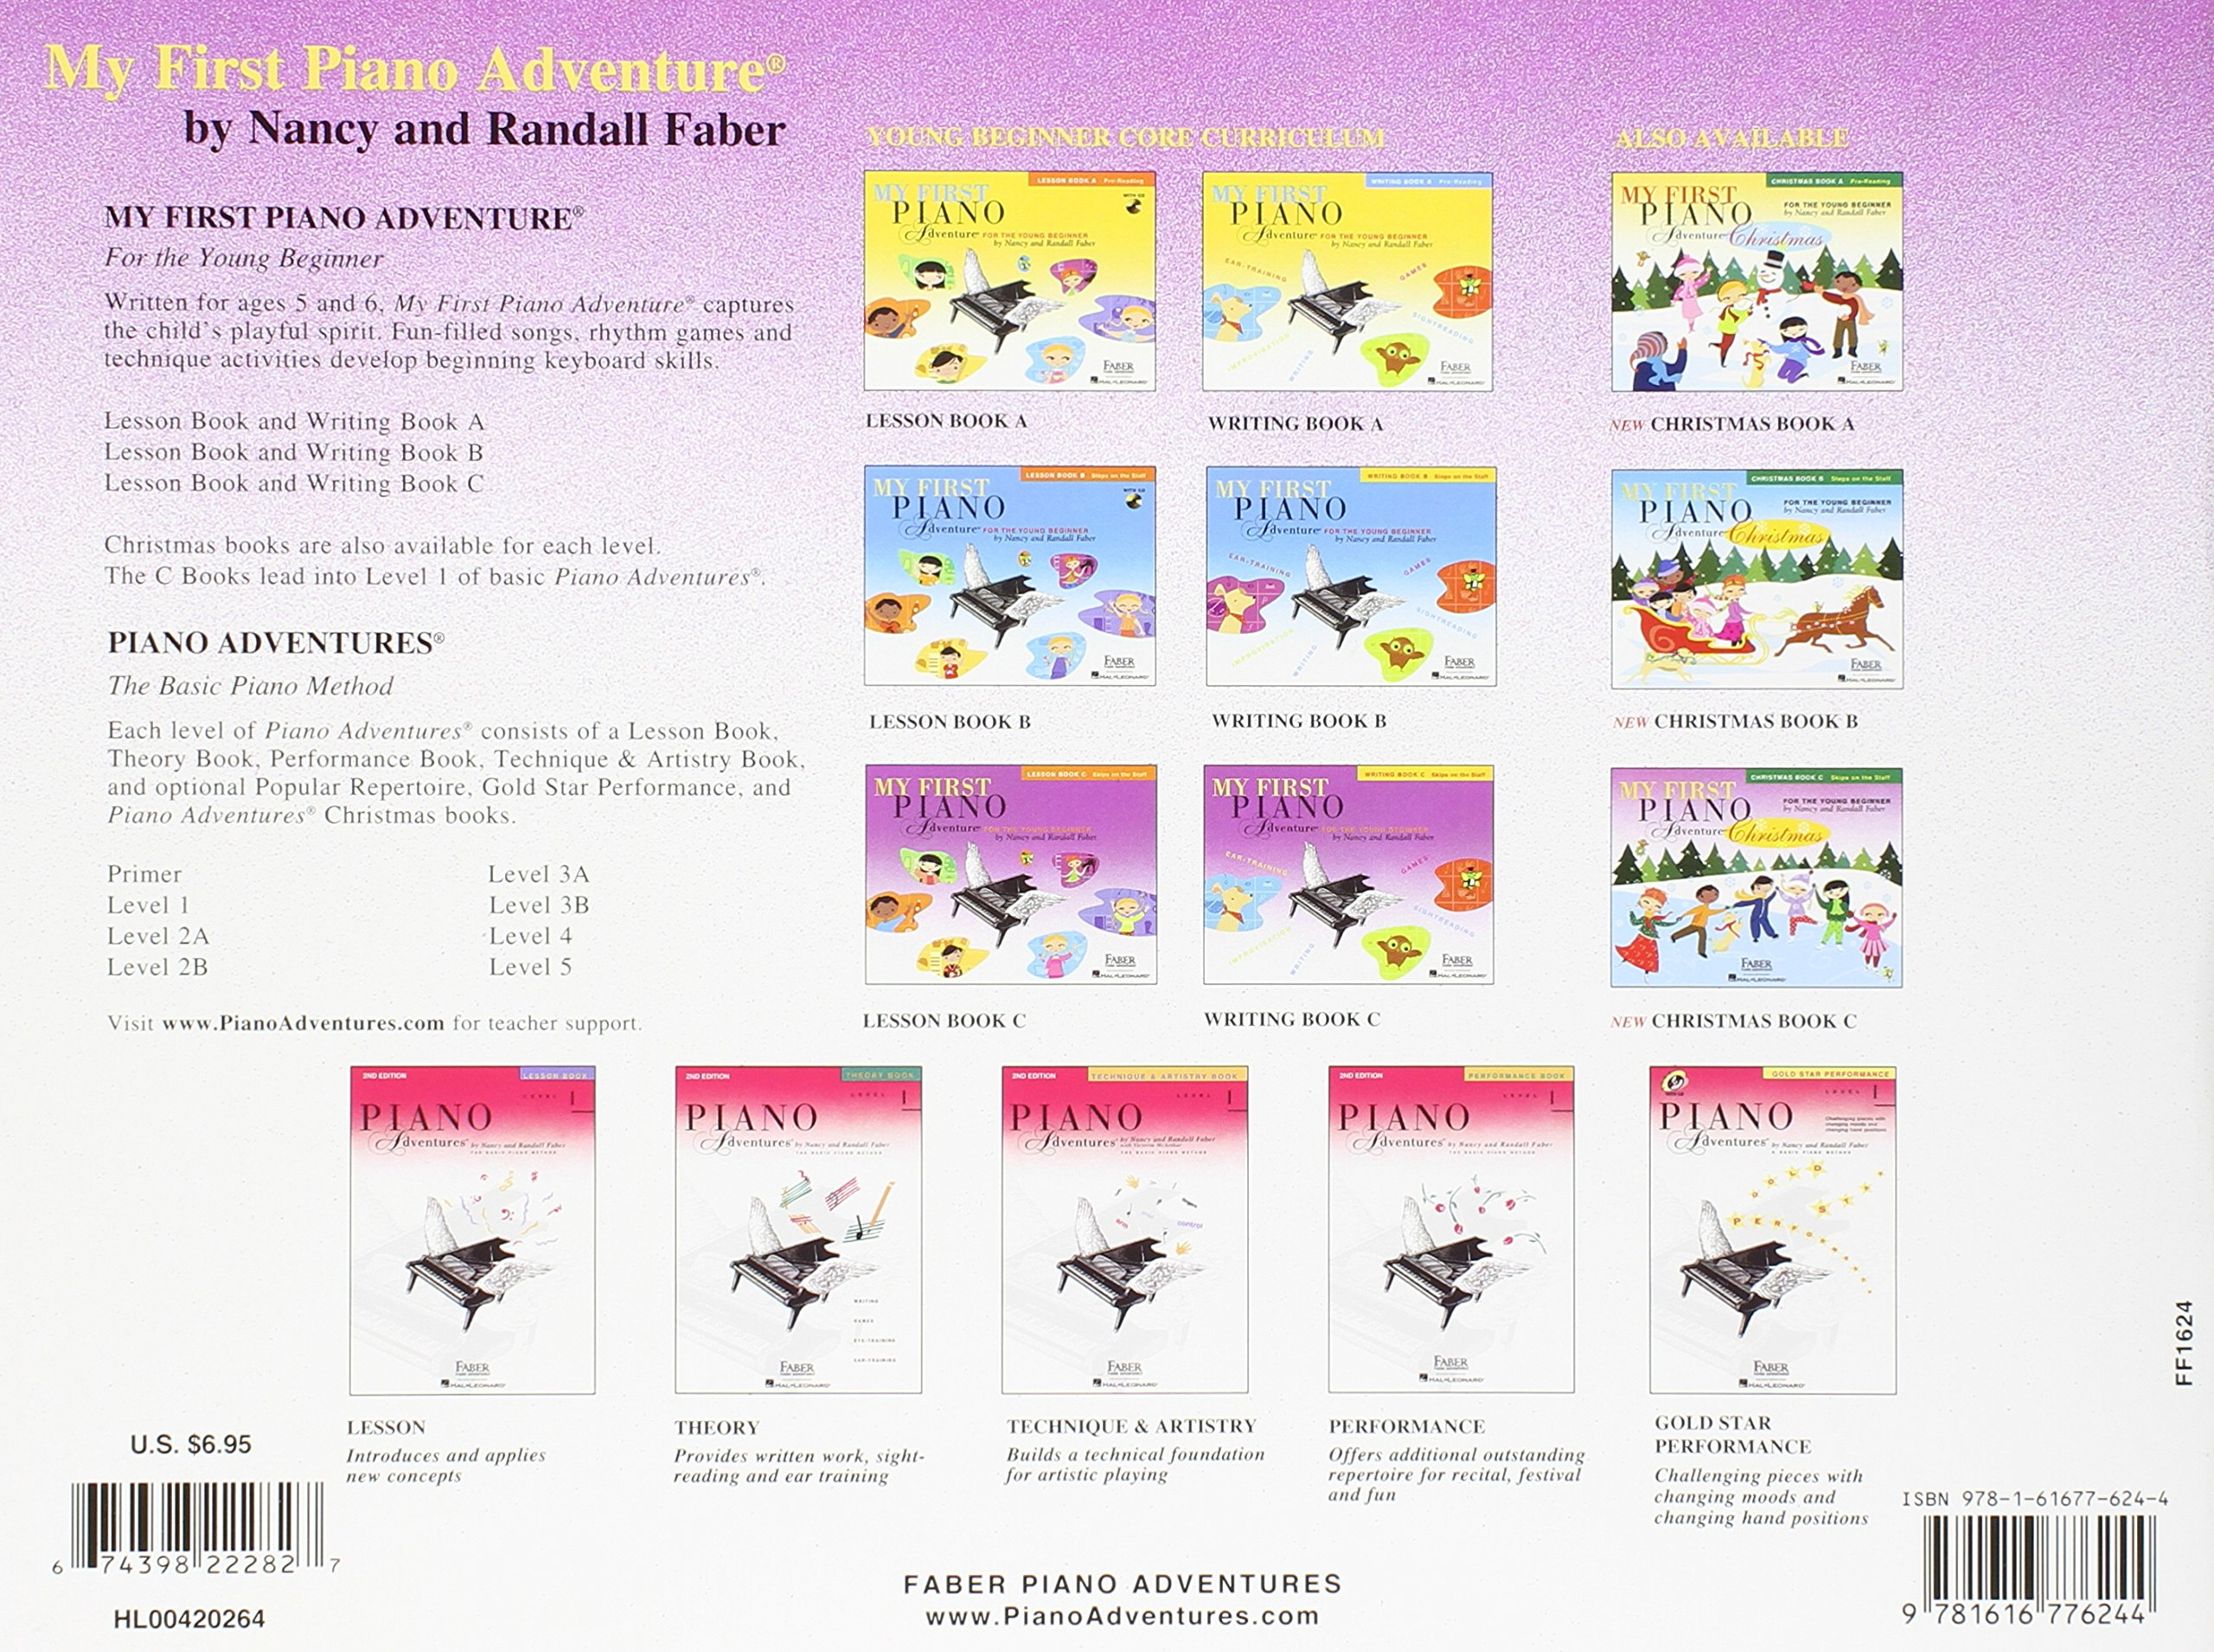 my first piano adventure writing book c piano adventure s my first piano adventure writing book c piano adventure s nancy faber randall faber 0674398222827 com books